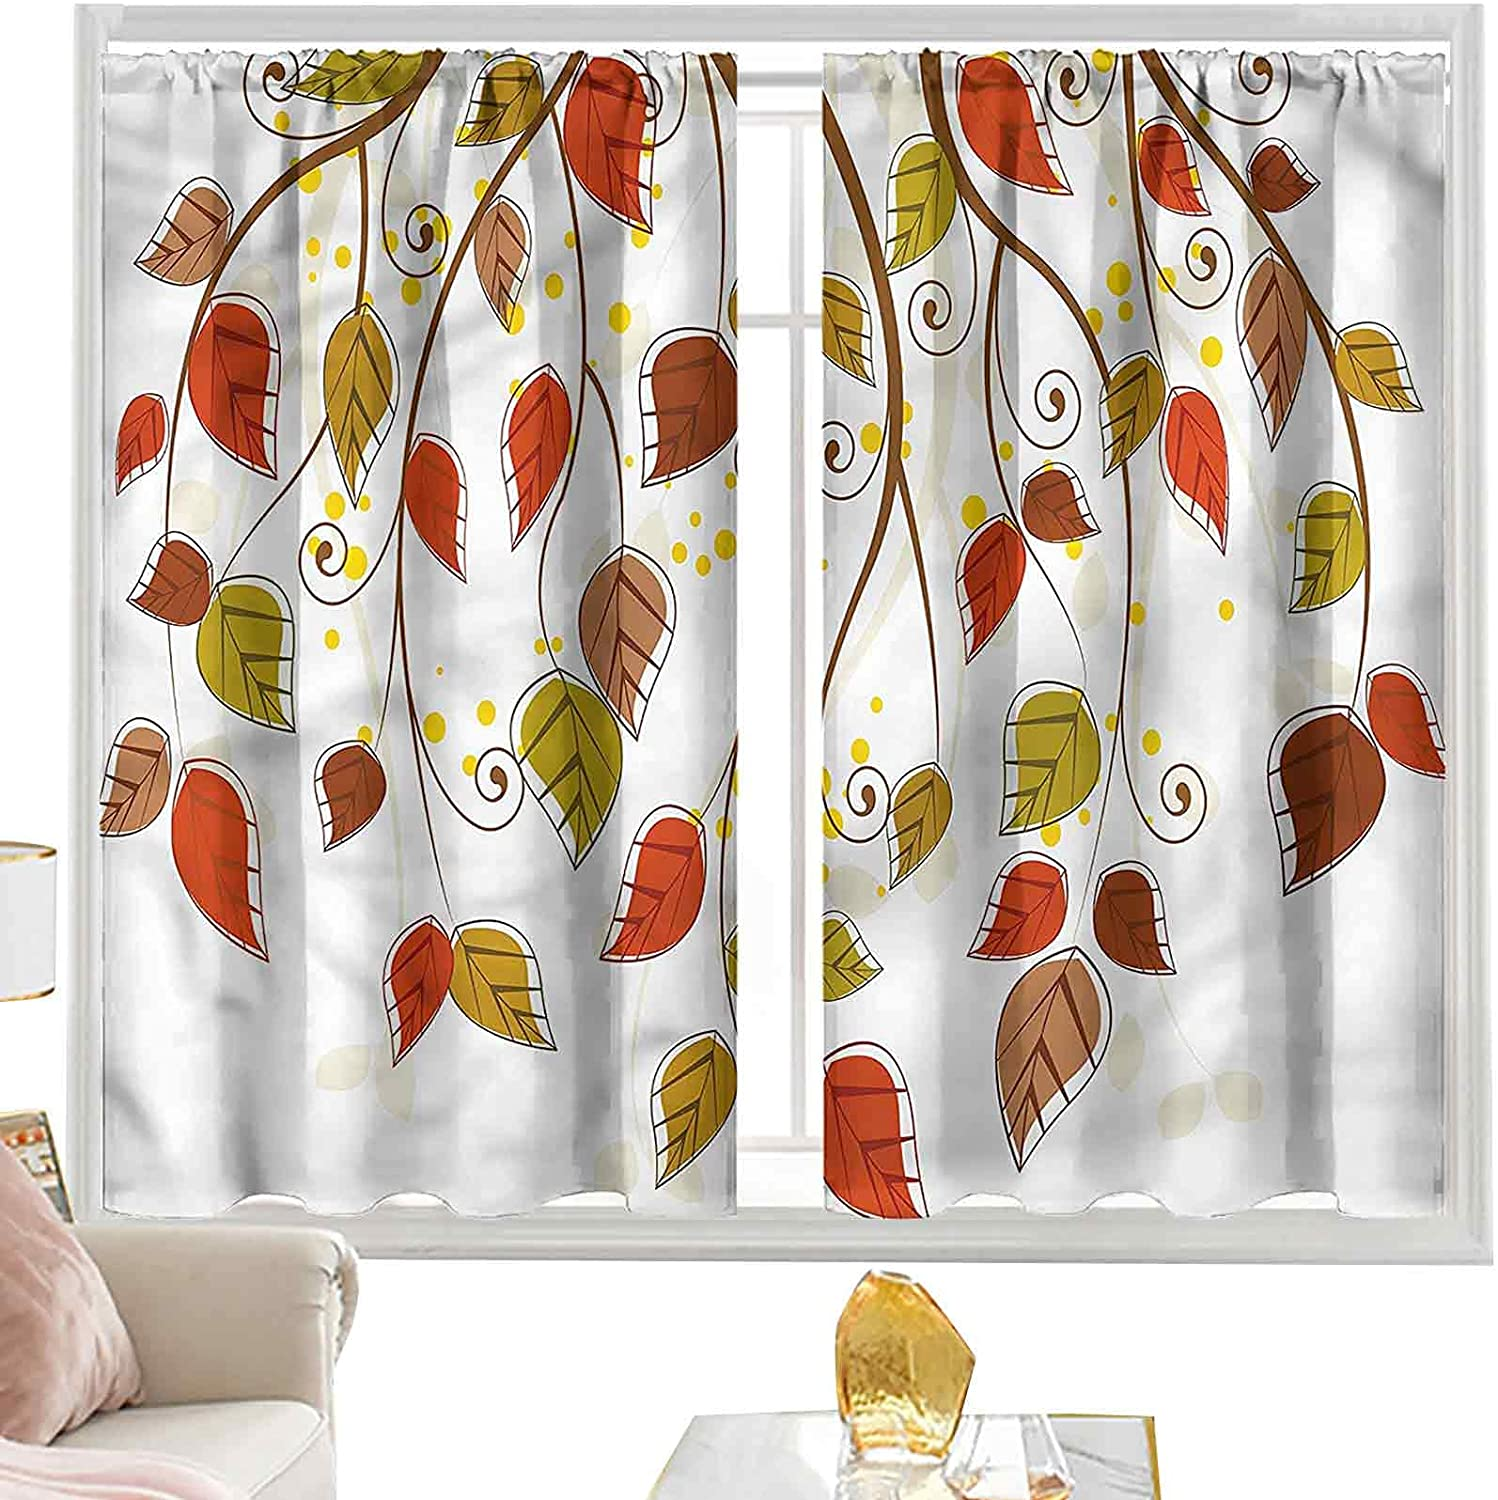 Light Blocking Curtains Autumn Branches Leaves L54 In New product type Fall x W52 Max 50% OFF